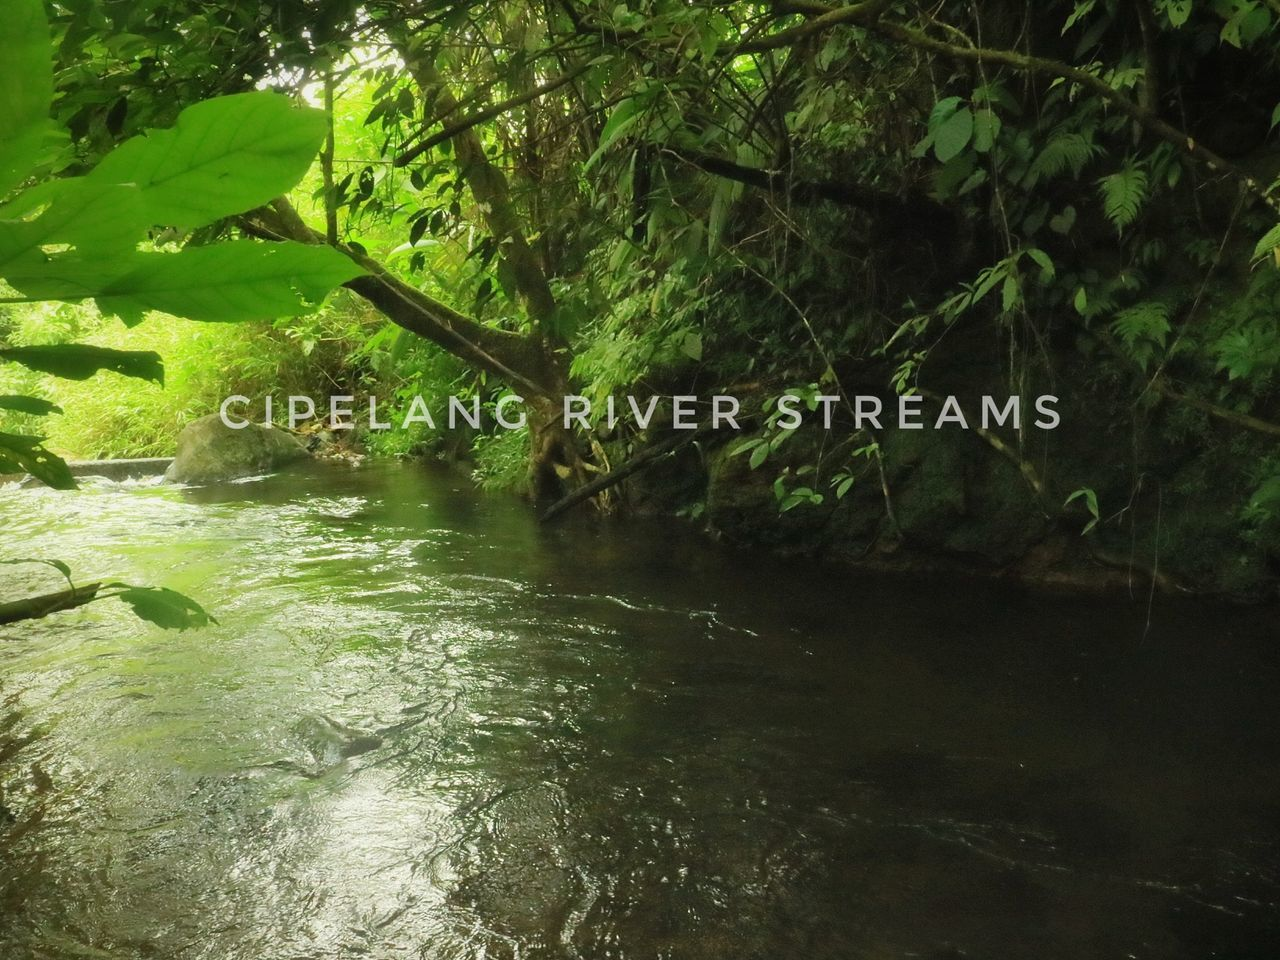 Streams And Rivers Sukabumi Sundaymorning Photoofthedy Nature_perfection Naturelovers River Ig_naturesbest Bns_nature Bns_world Rsa_ladies Bestplaces Green Nature Natgeo_lovers